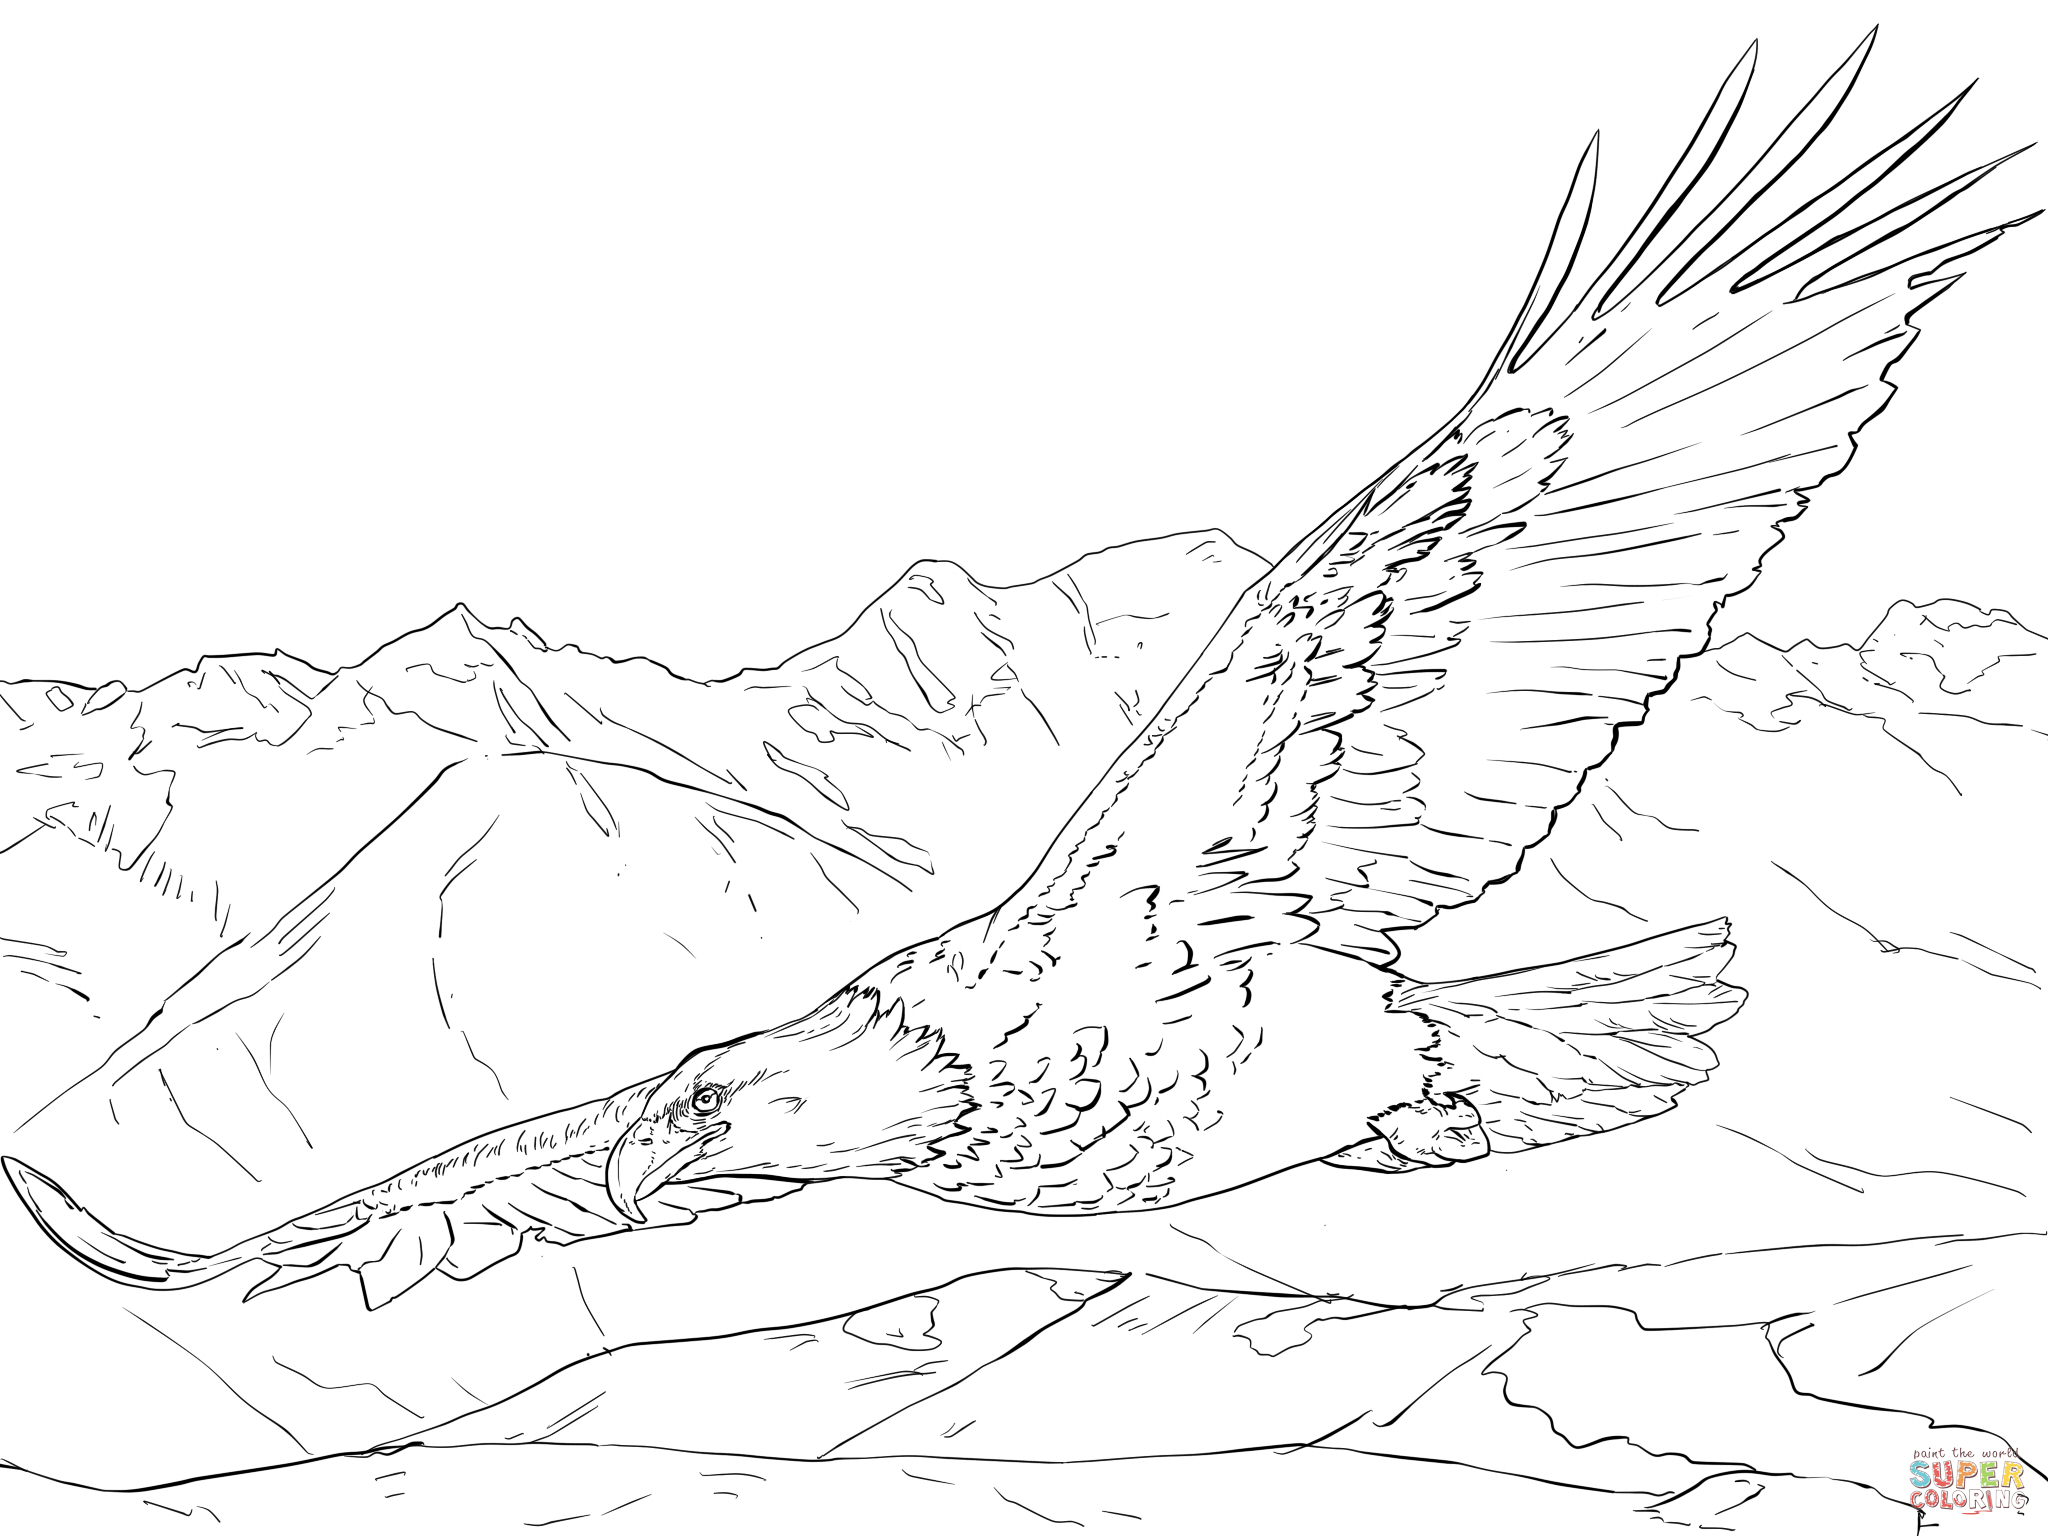 bald eagle coloring pictures free eagle coloring pages eagle bald pictures coloring